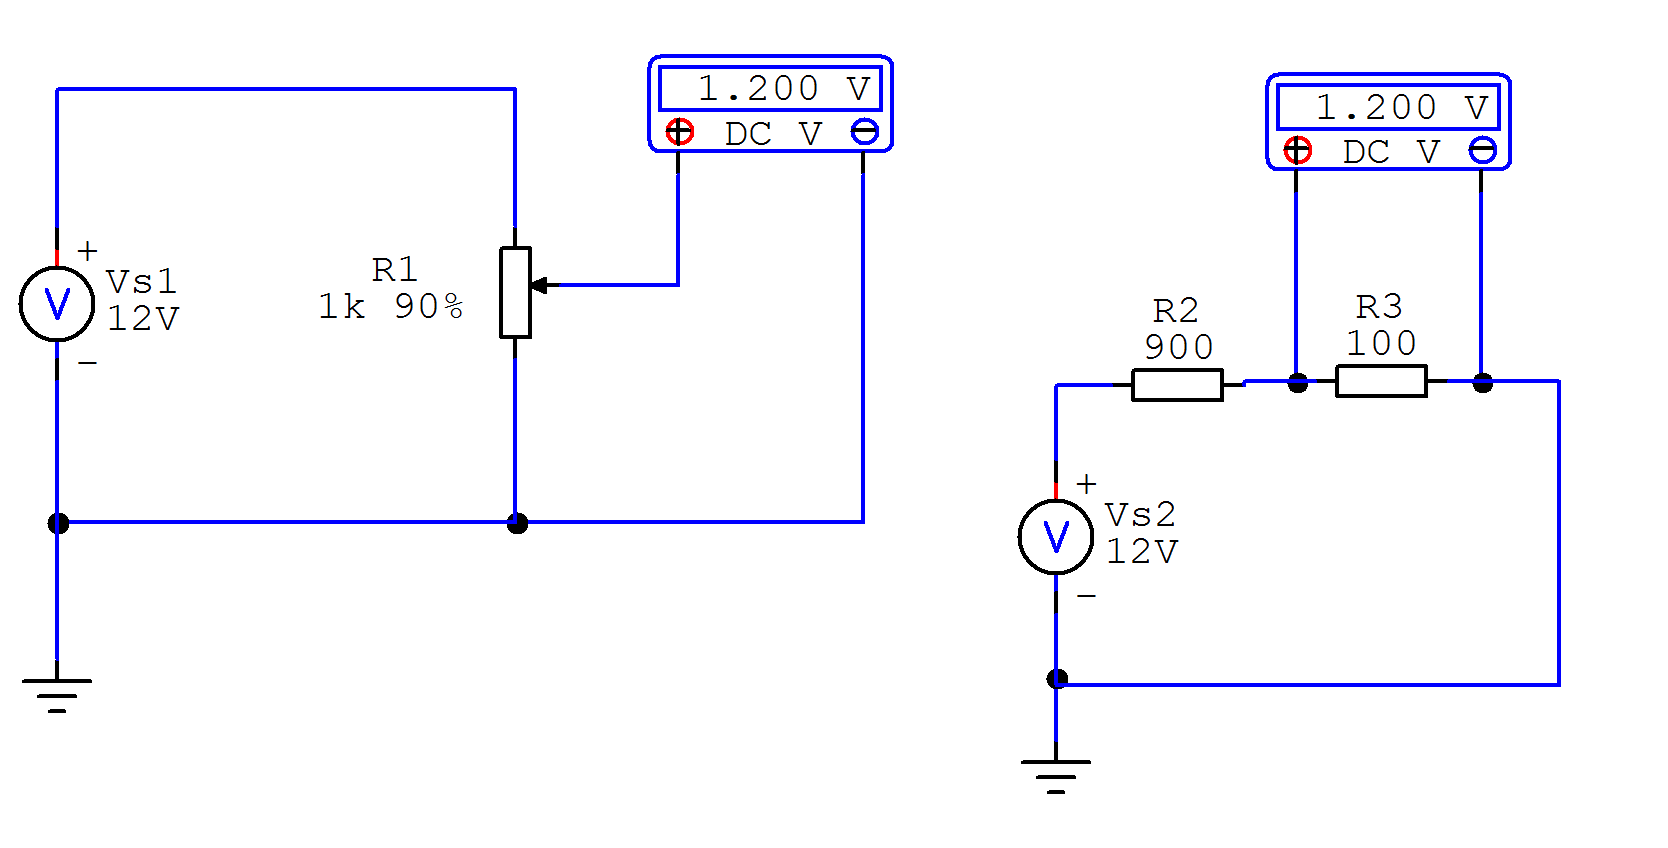 small resolution of solved eagle 8 5 2 potentiometer simulation does not work displaying 17 gallery images for potentiometer schematic symbol